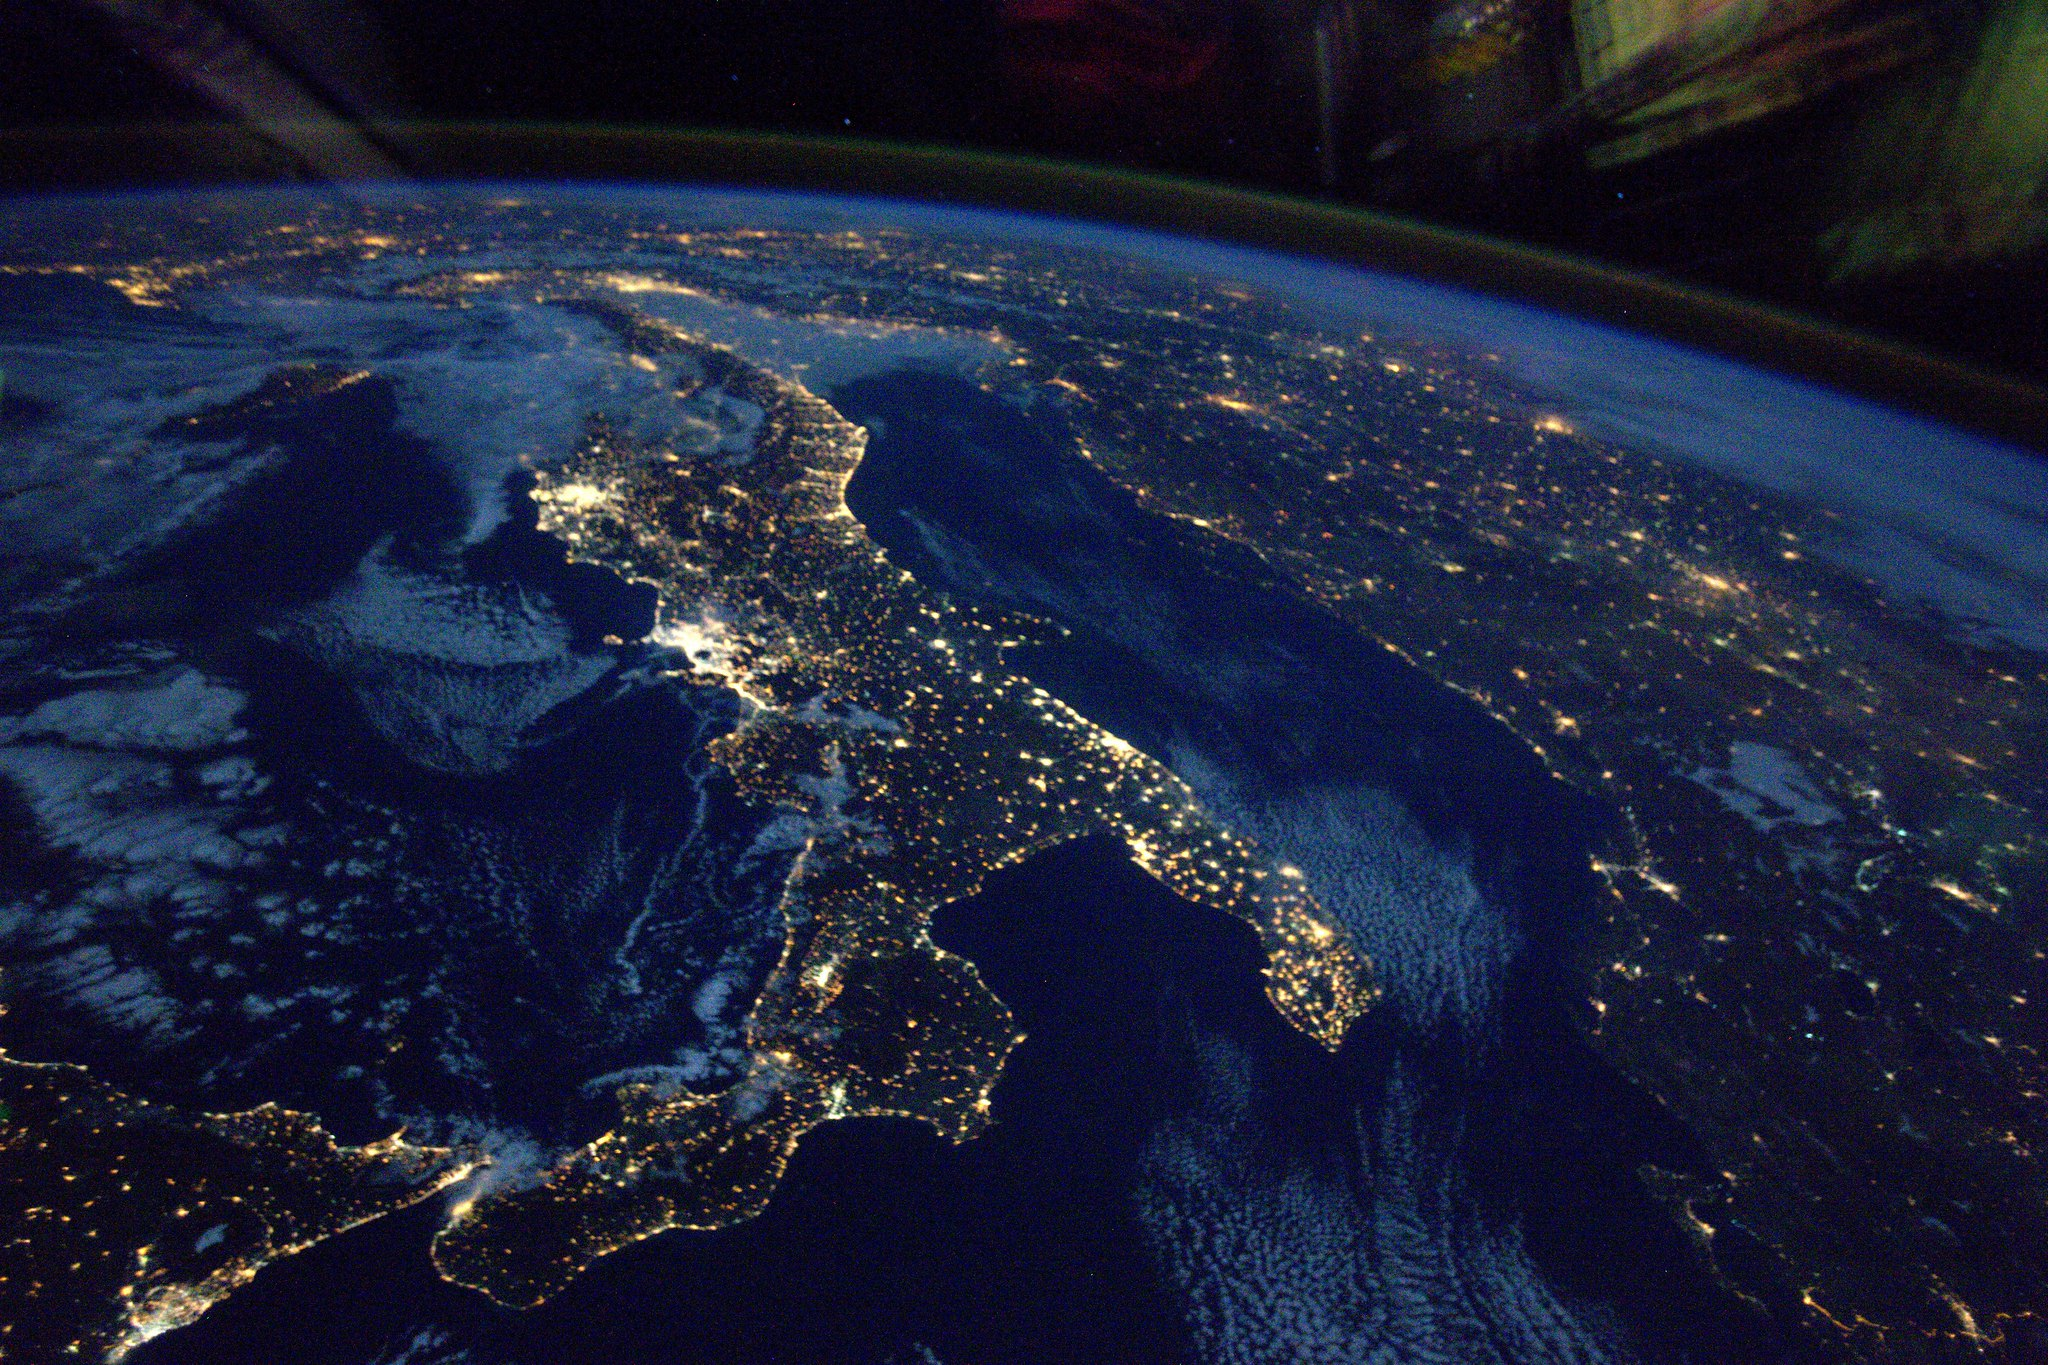 French Astronaut Thomas Pesquet - Italy at night